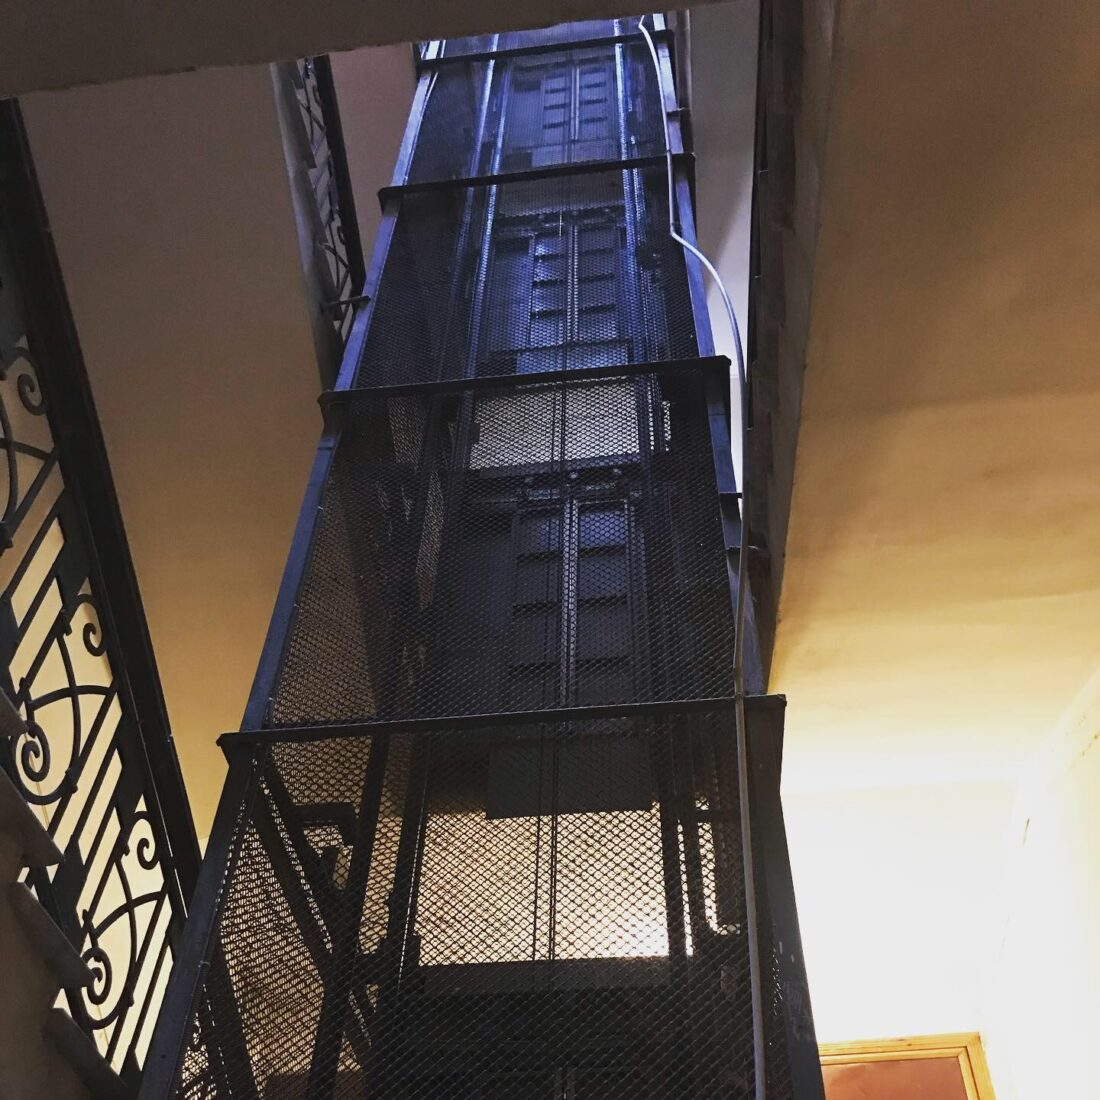 Kiev's Tower of Terror, aka, the elevator where I was staying.